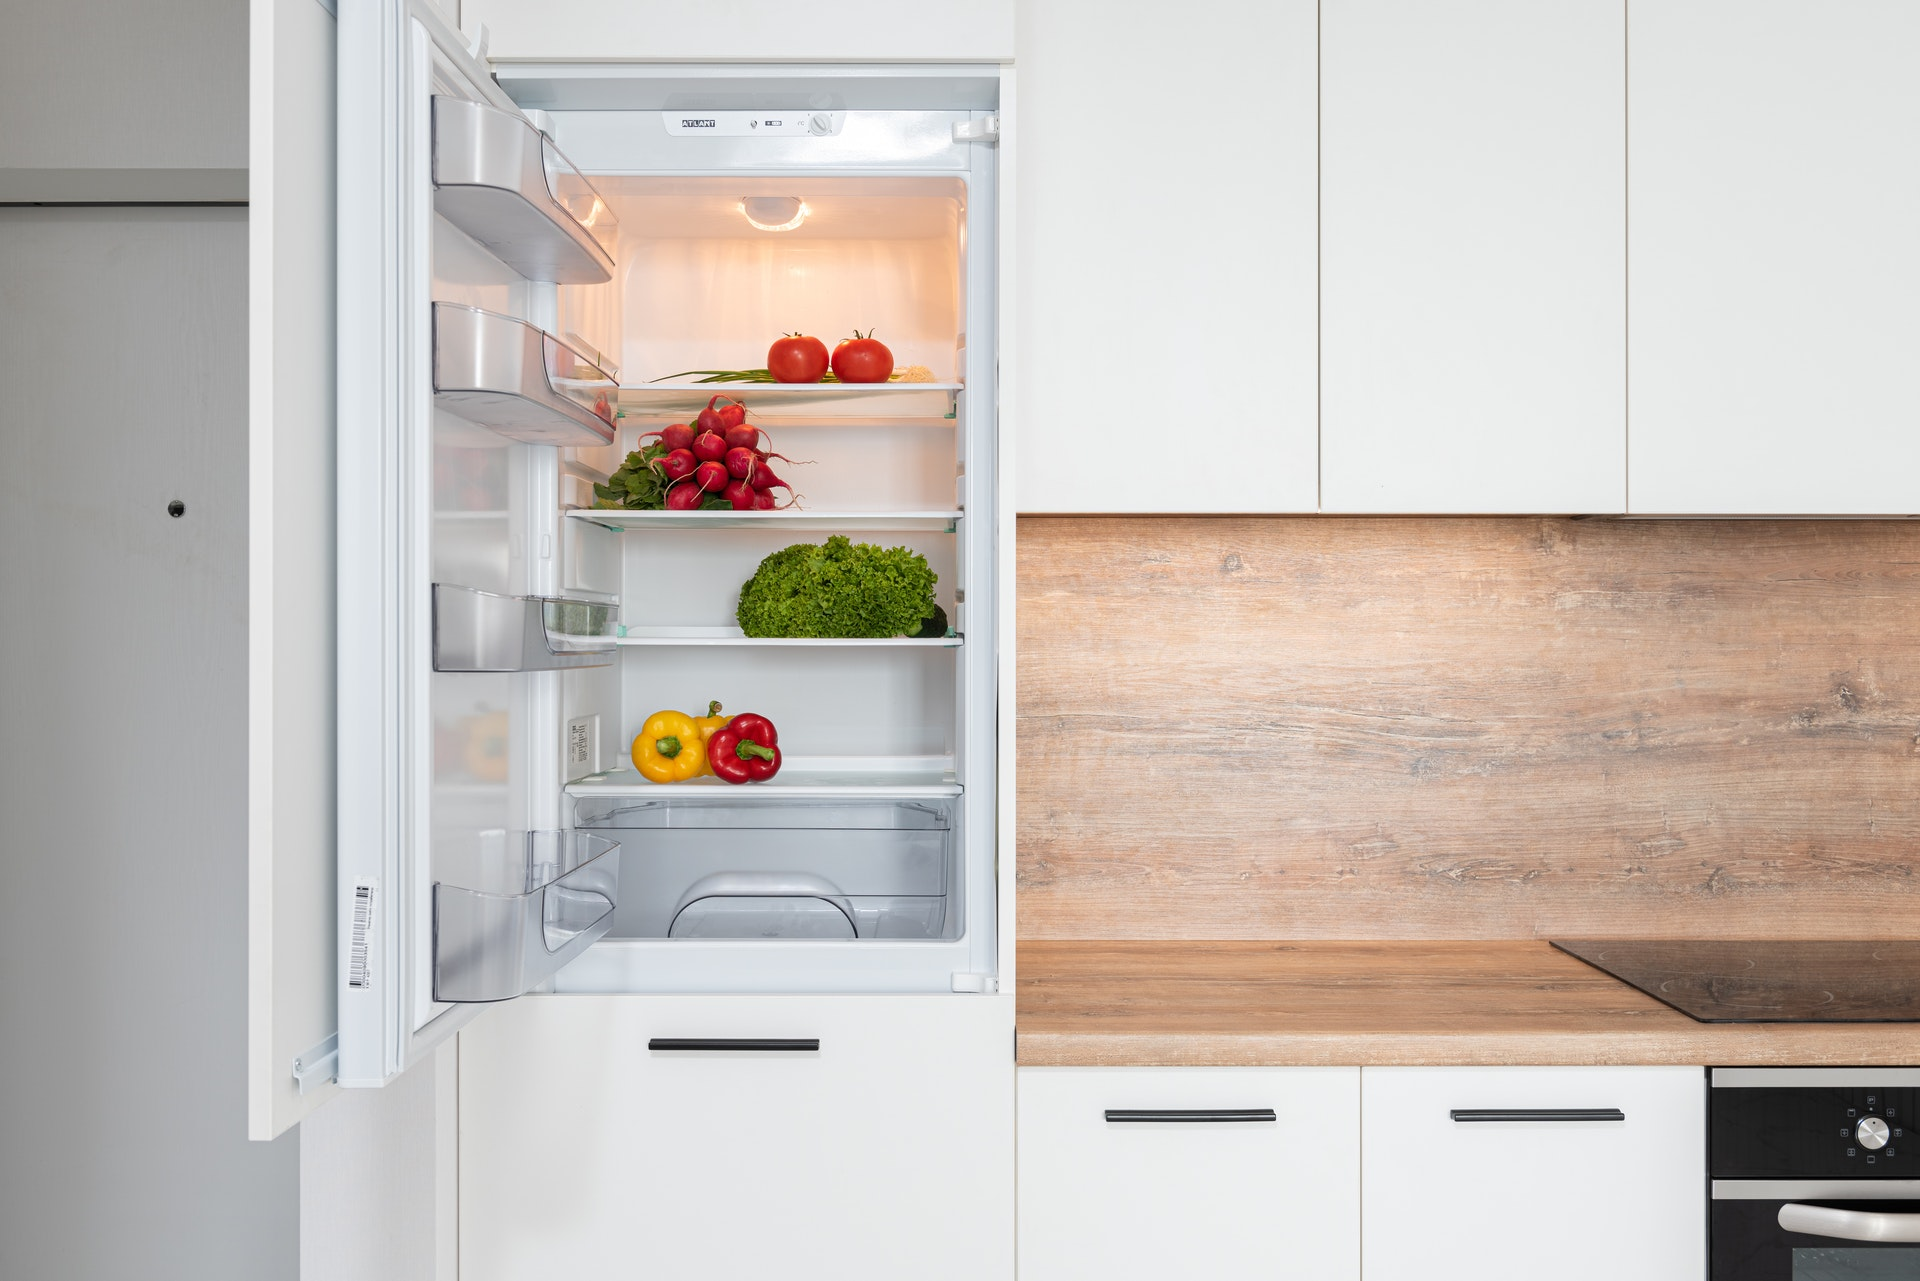 How To Pack & Move A Refrigerator For Storage